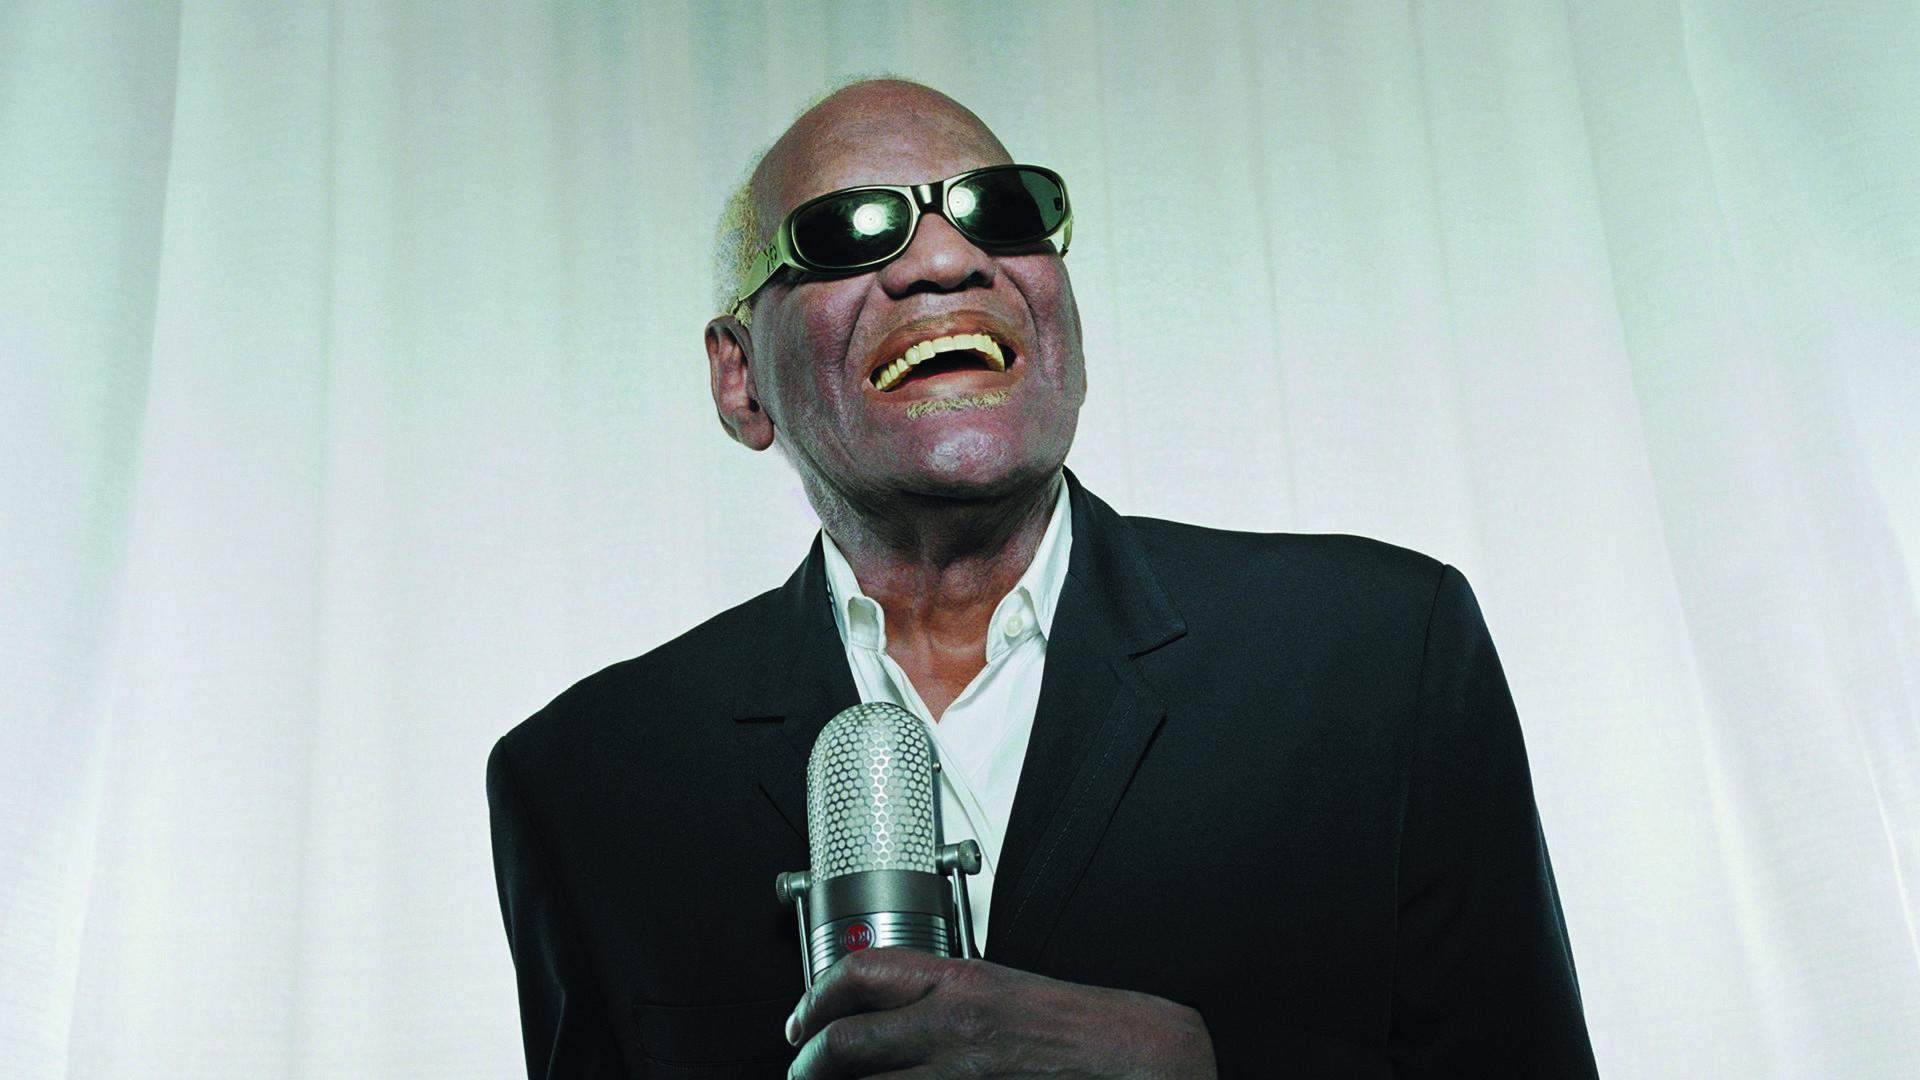 Ray Charles download wallpapers